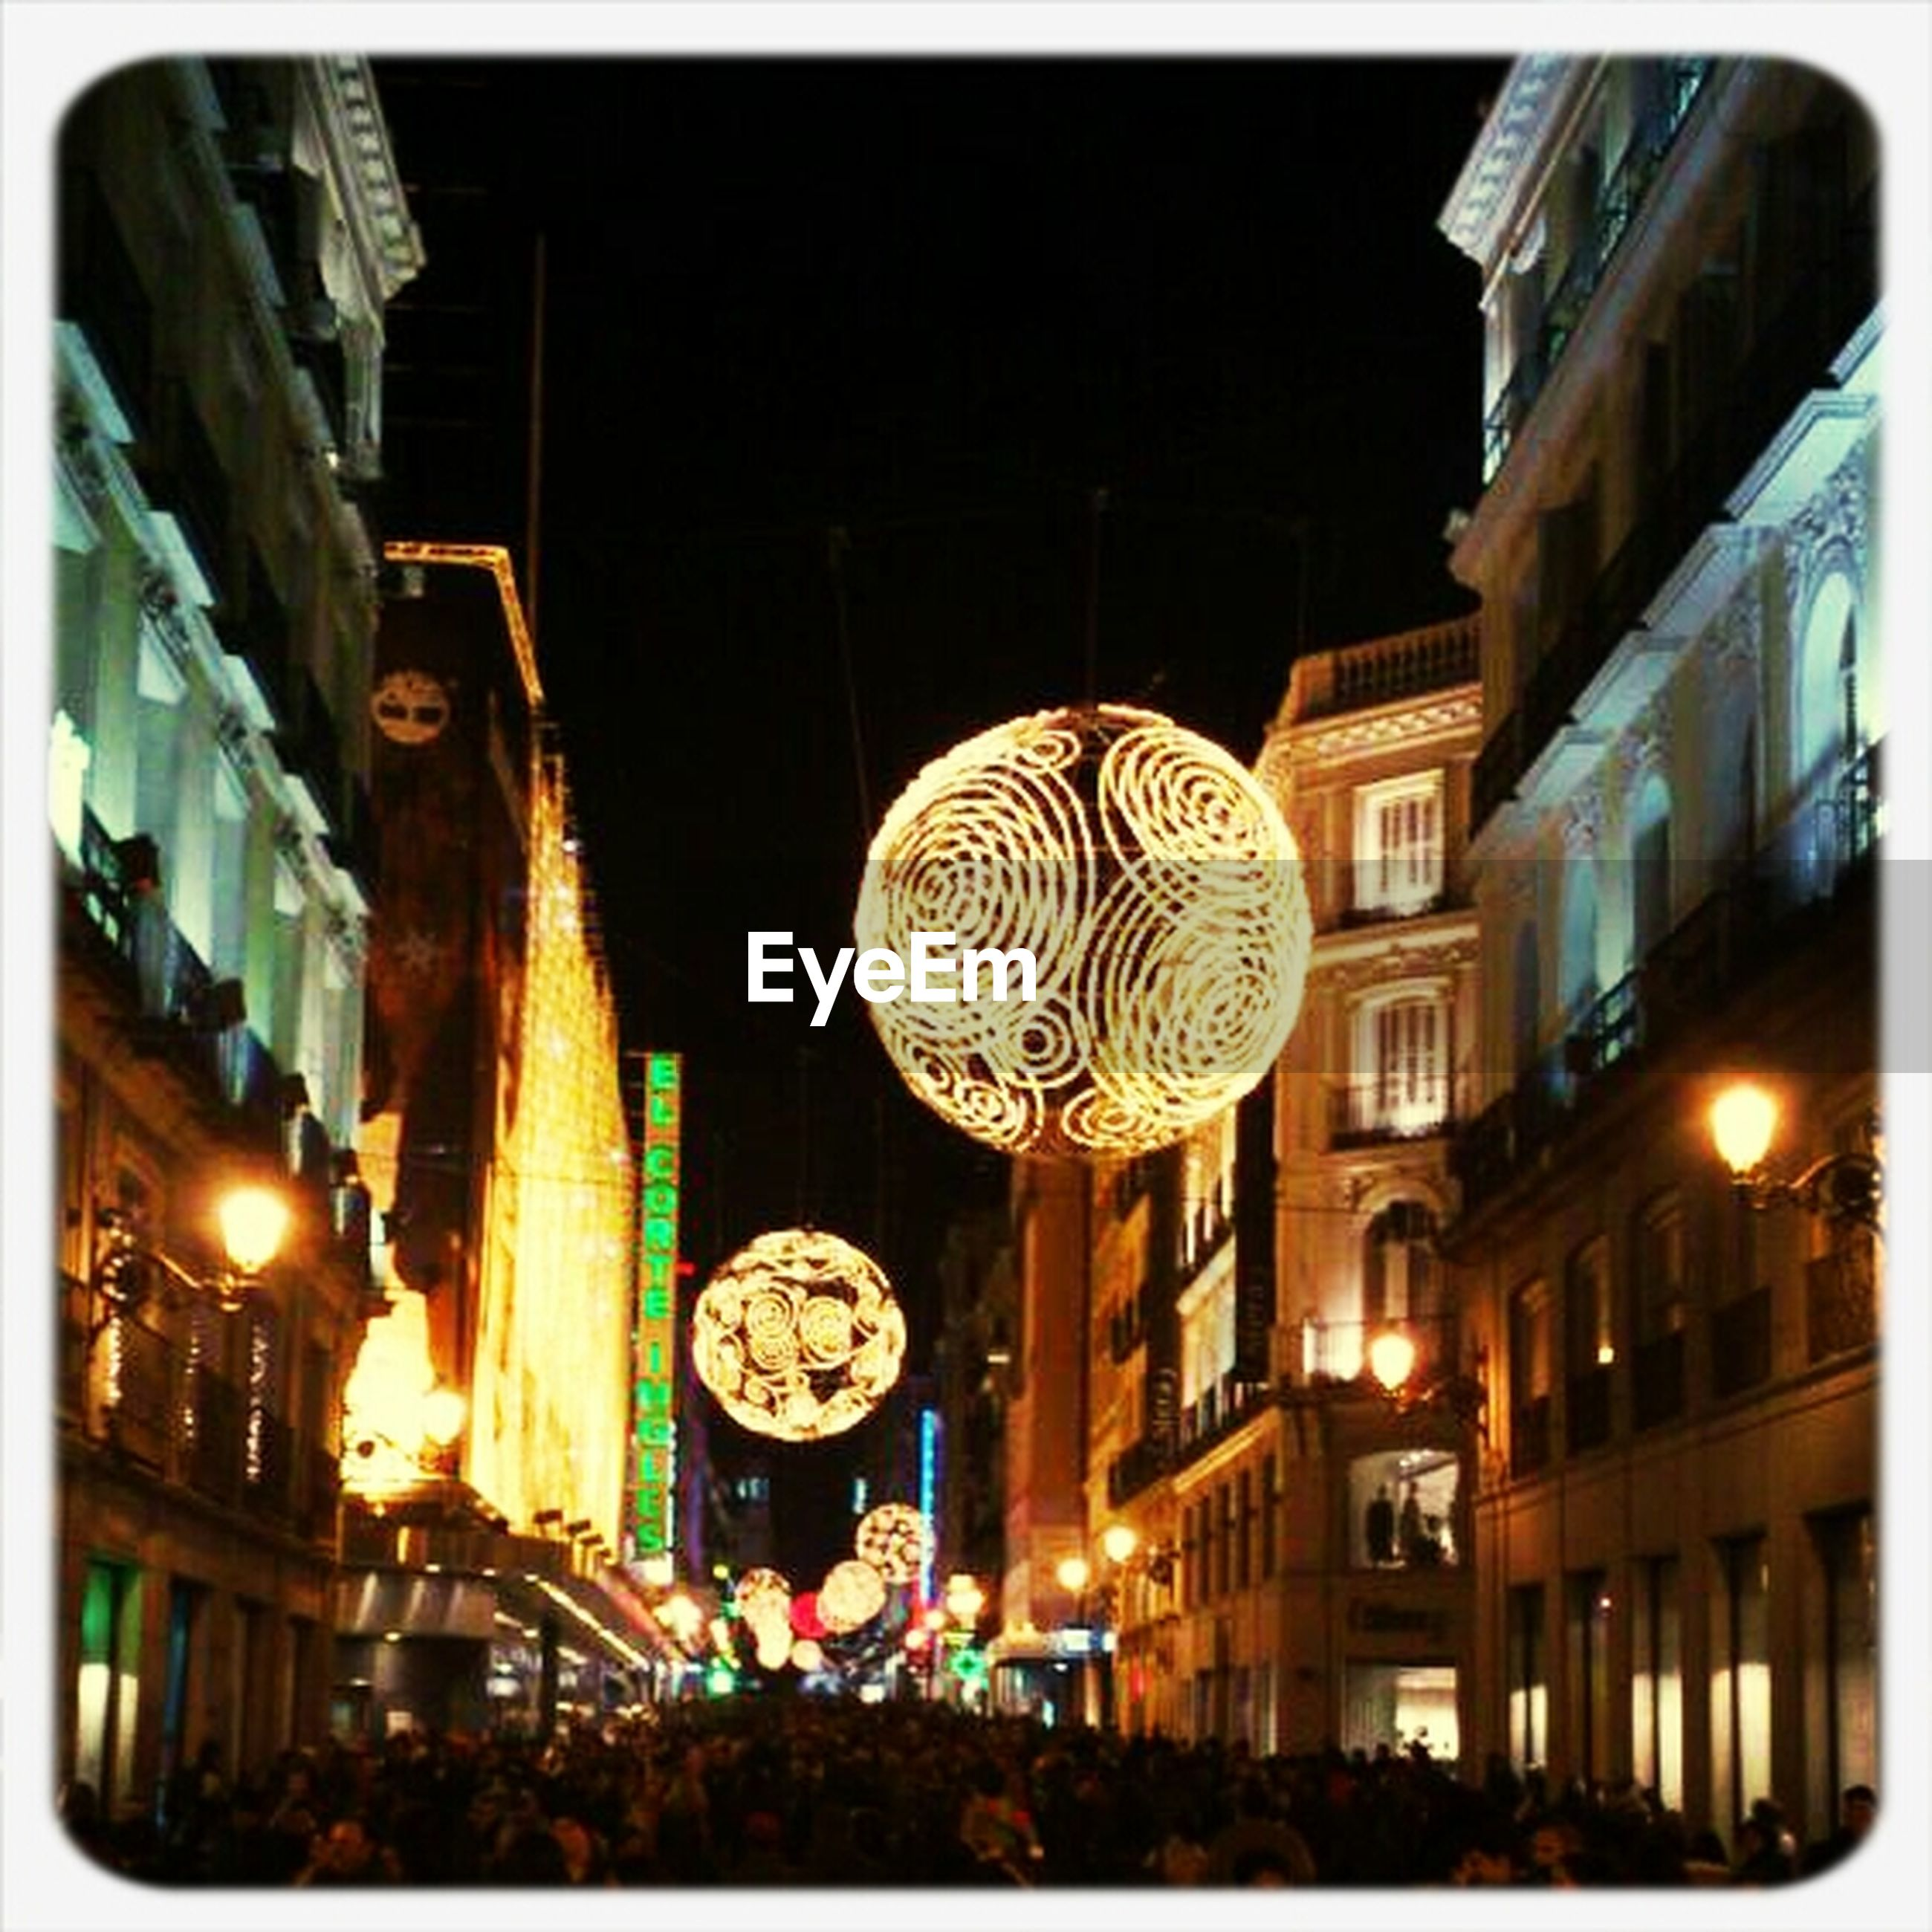 illuminated, night, transfer print, architecture, building exterior, built structure, low angle view, lighting equipment, city, auto post production filter, celebration, city life, street light, decoration, large group of people, sky, christmas, building, arts culture and entertainment, hanging